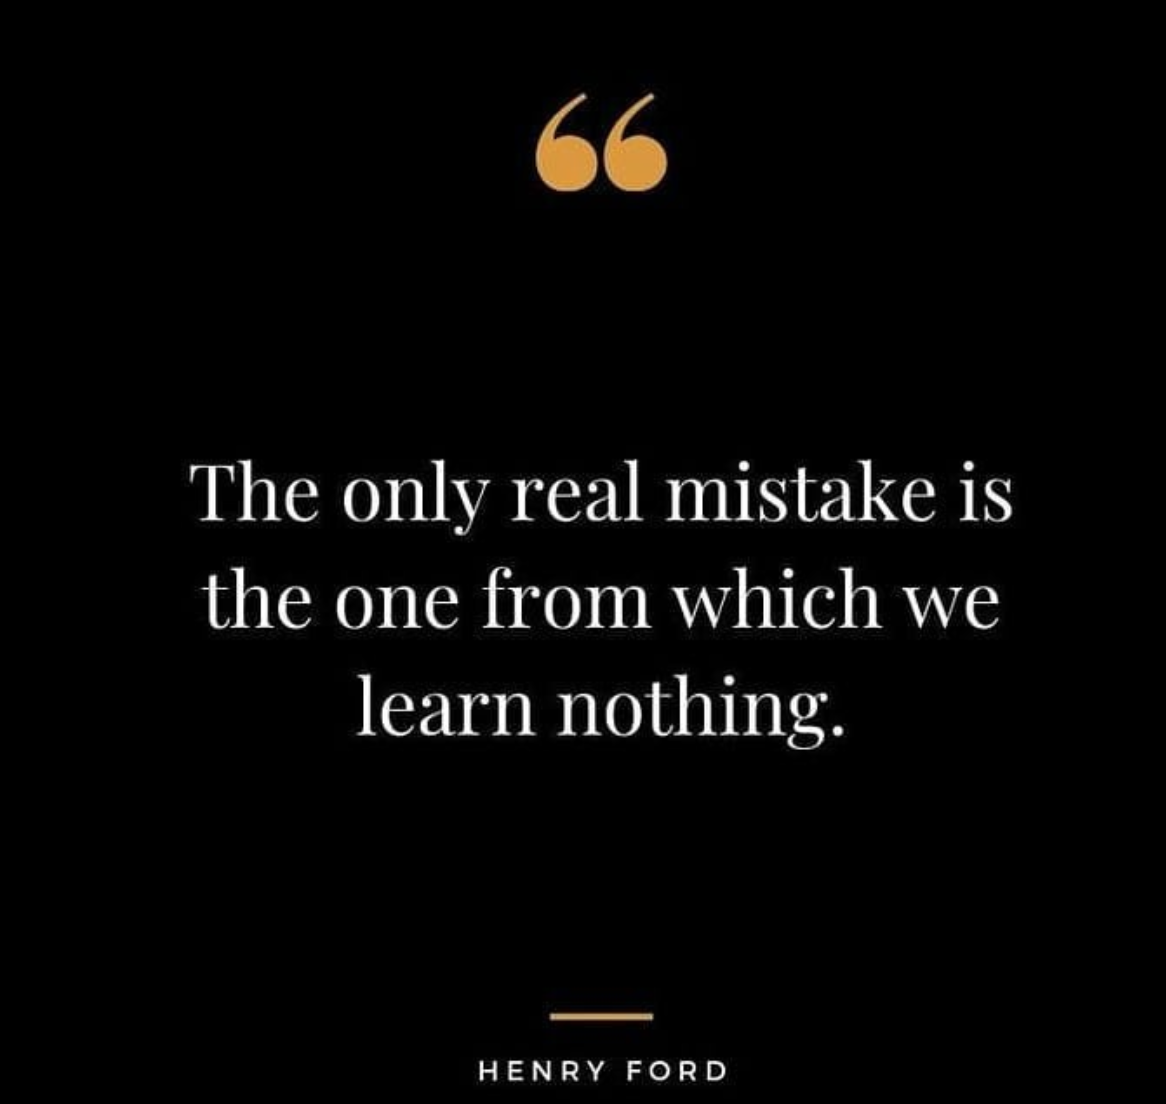 [Image] The only real mistake is the one from which we learn nothing